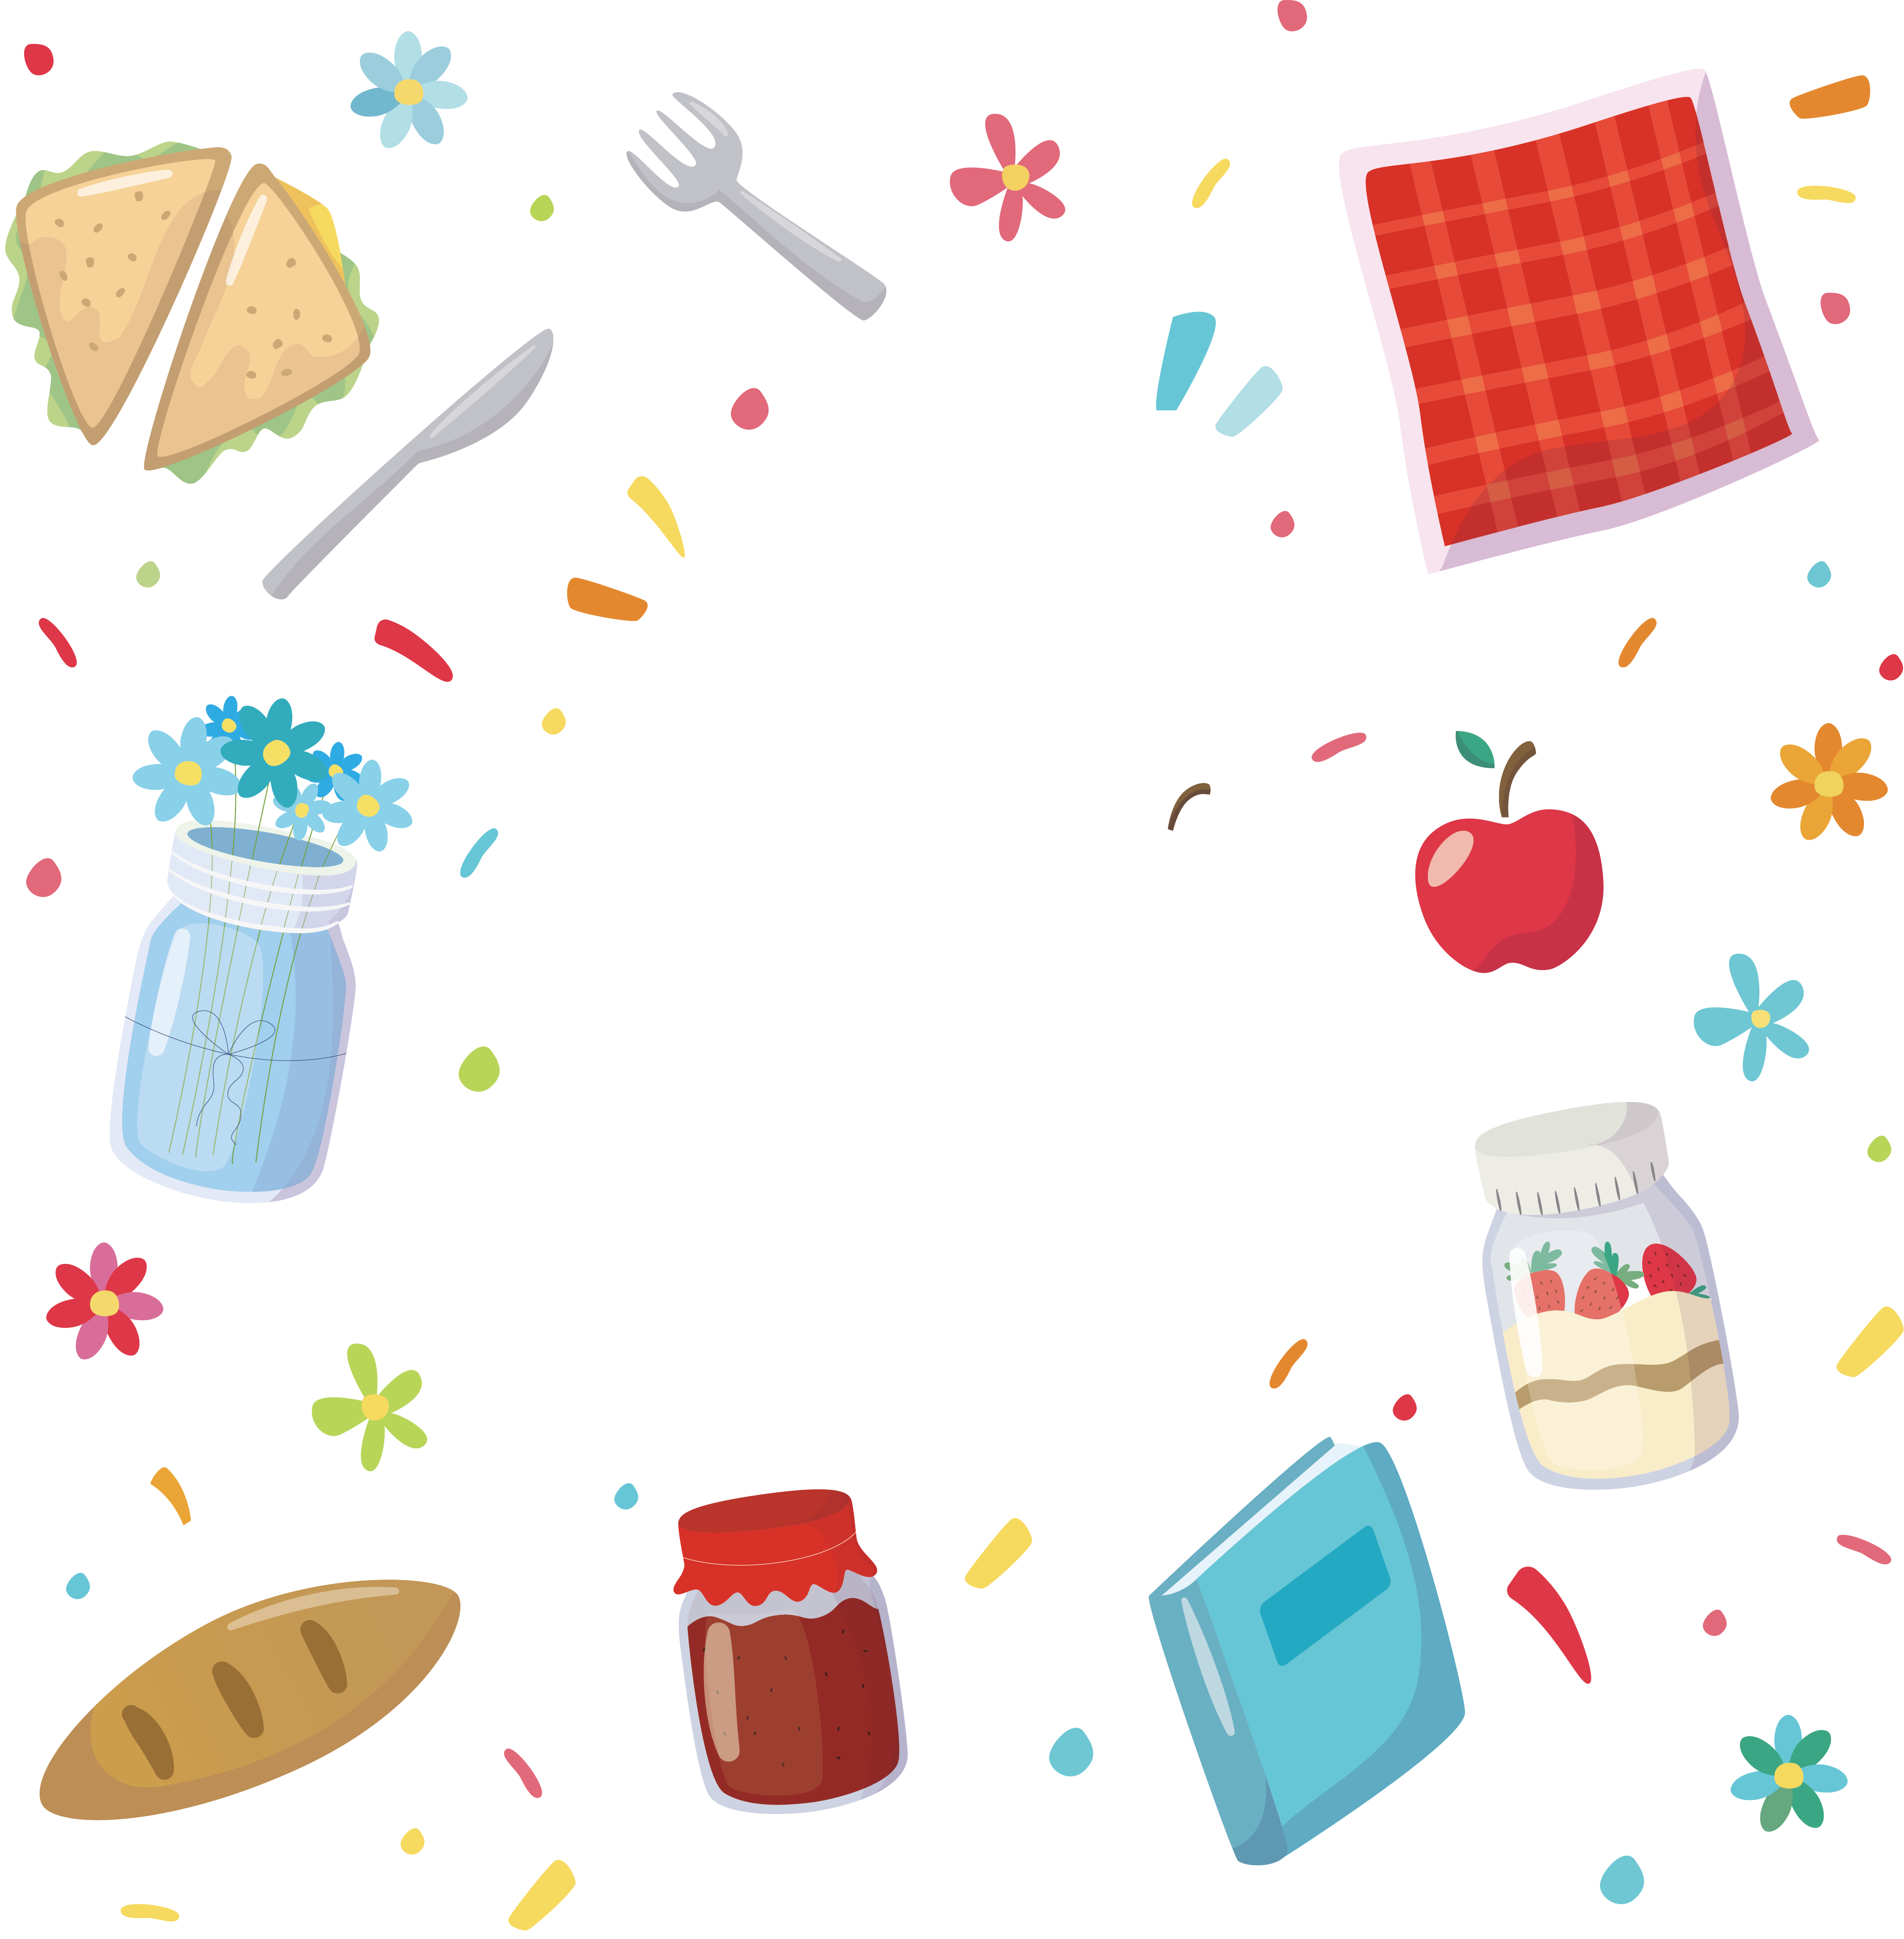 Jam sandwich design png. Food background clipart